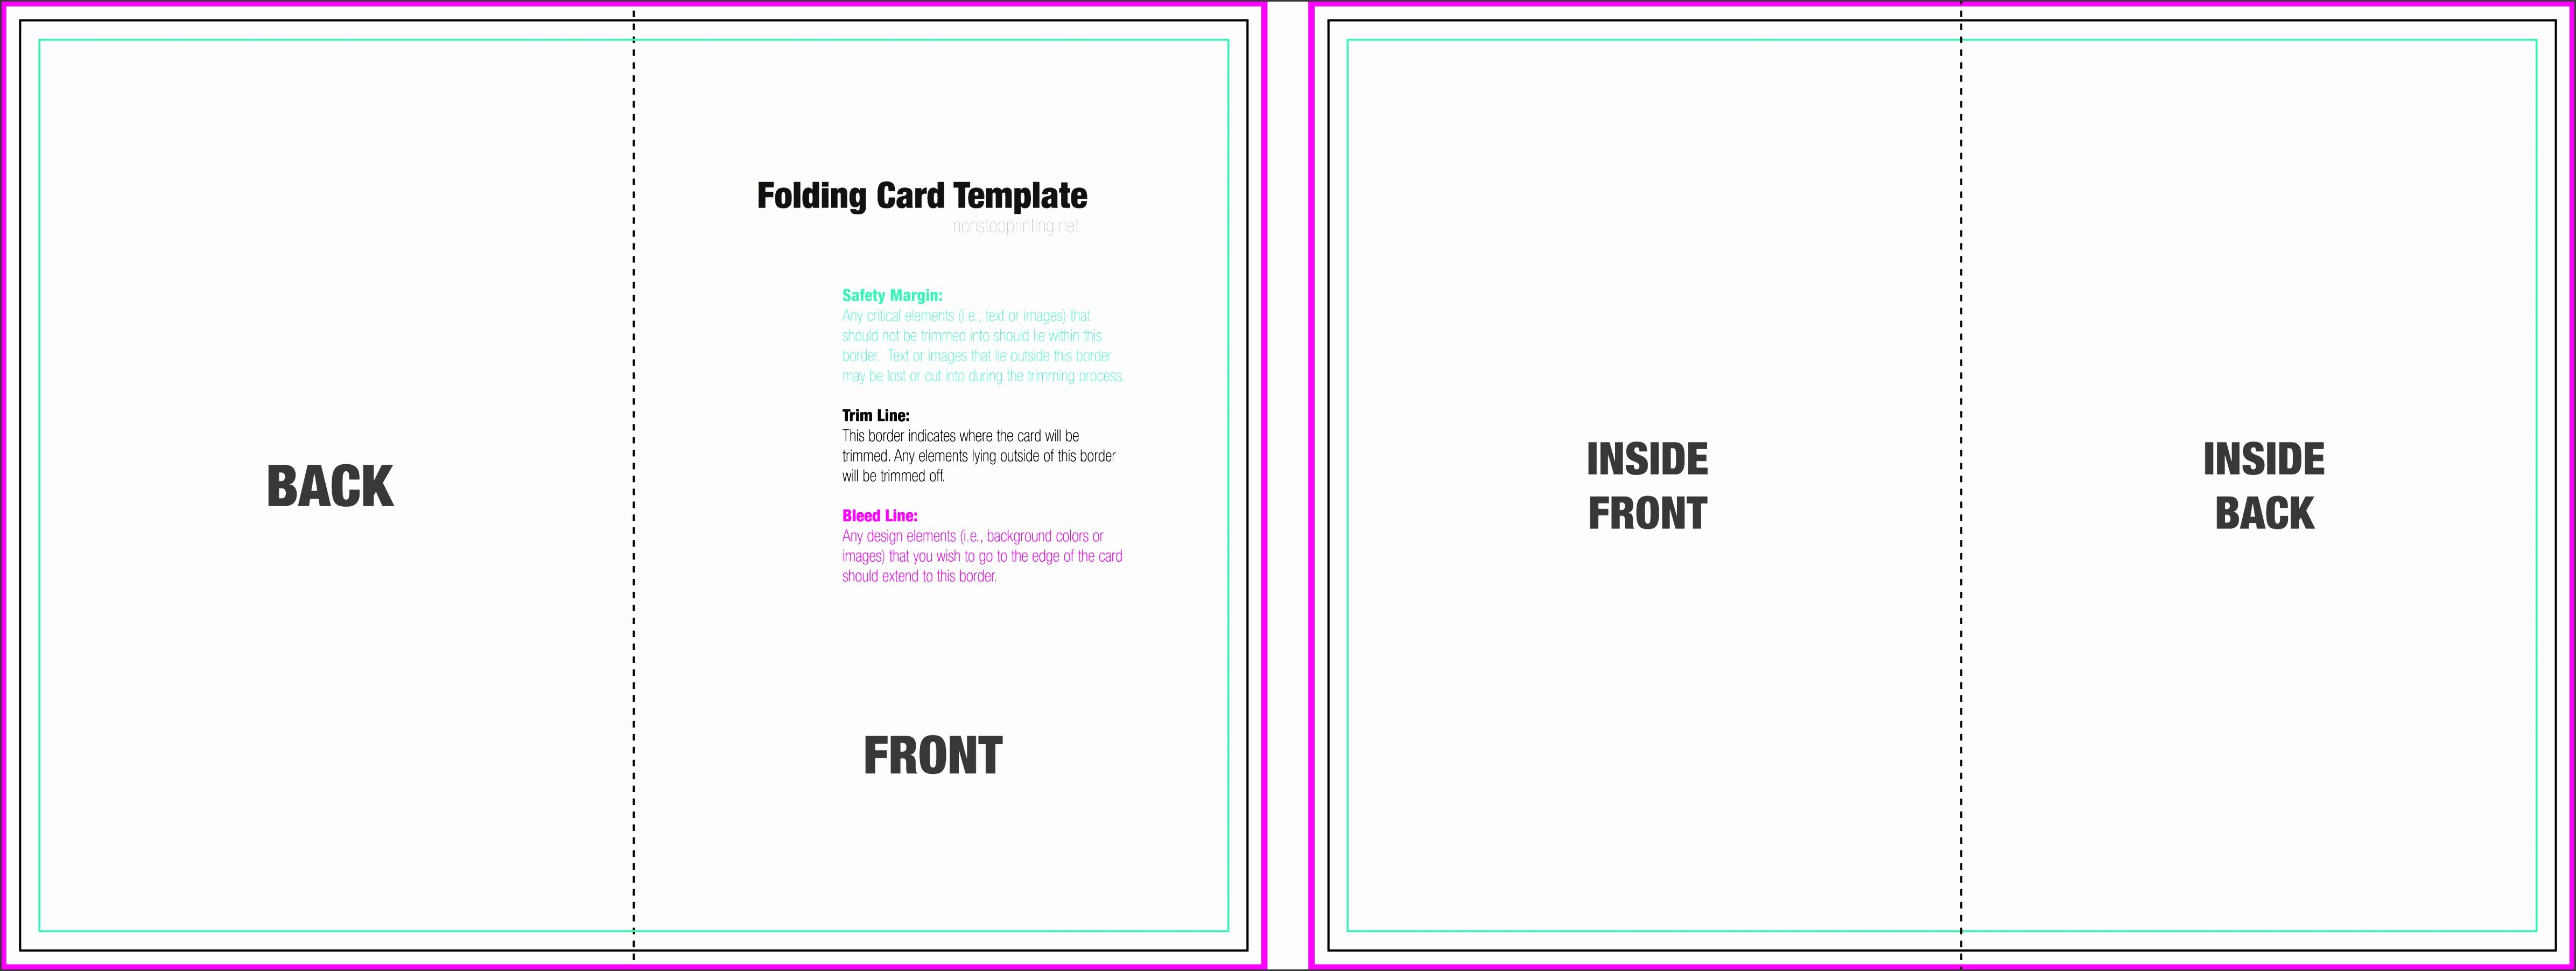 Direction Card Template Microsoft Word Best Of 8 Foldable Card Template Word Sampletemplatess